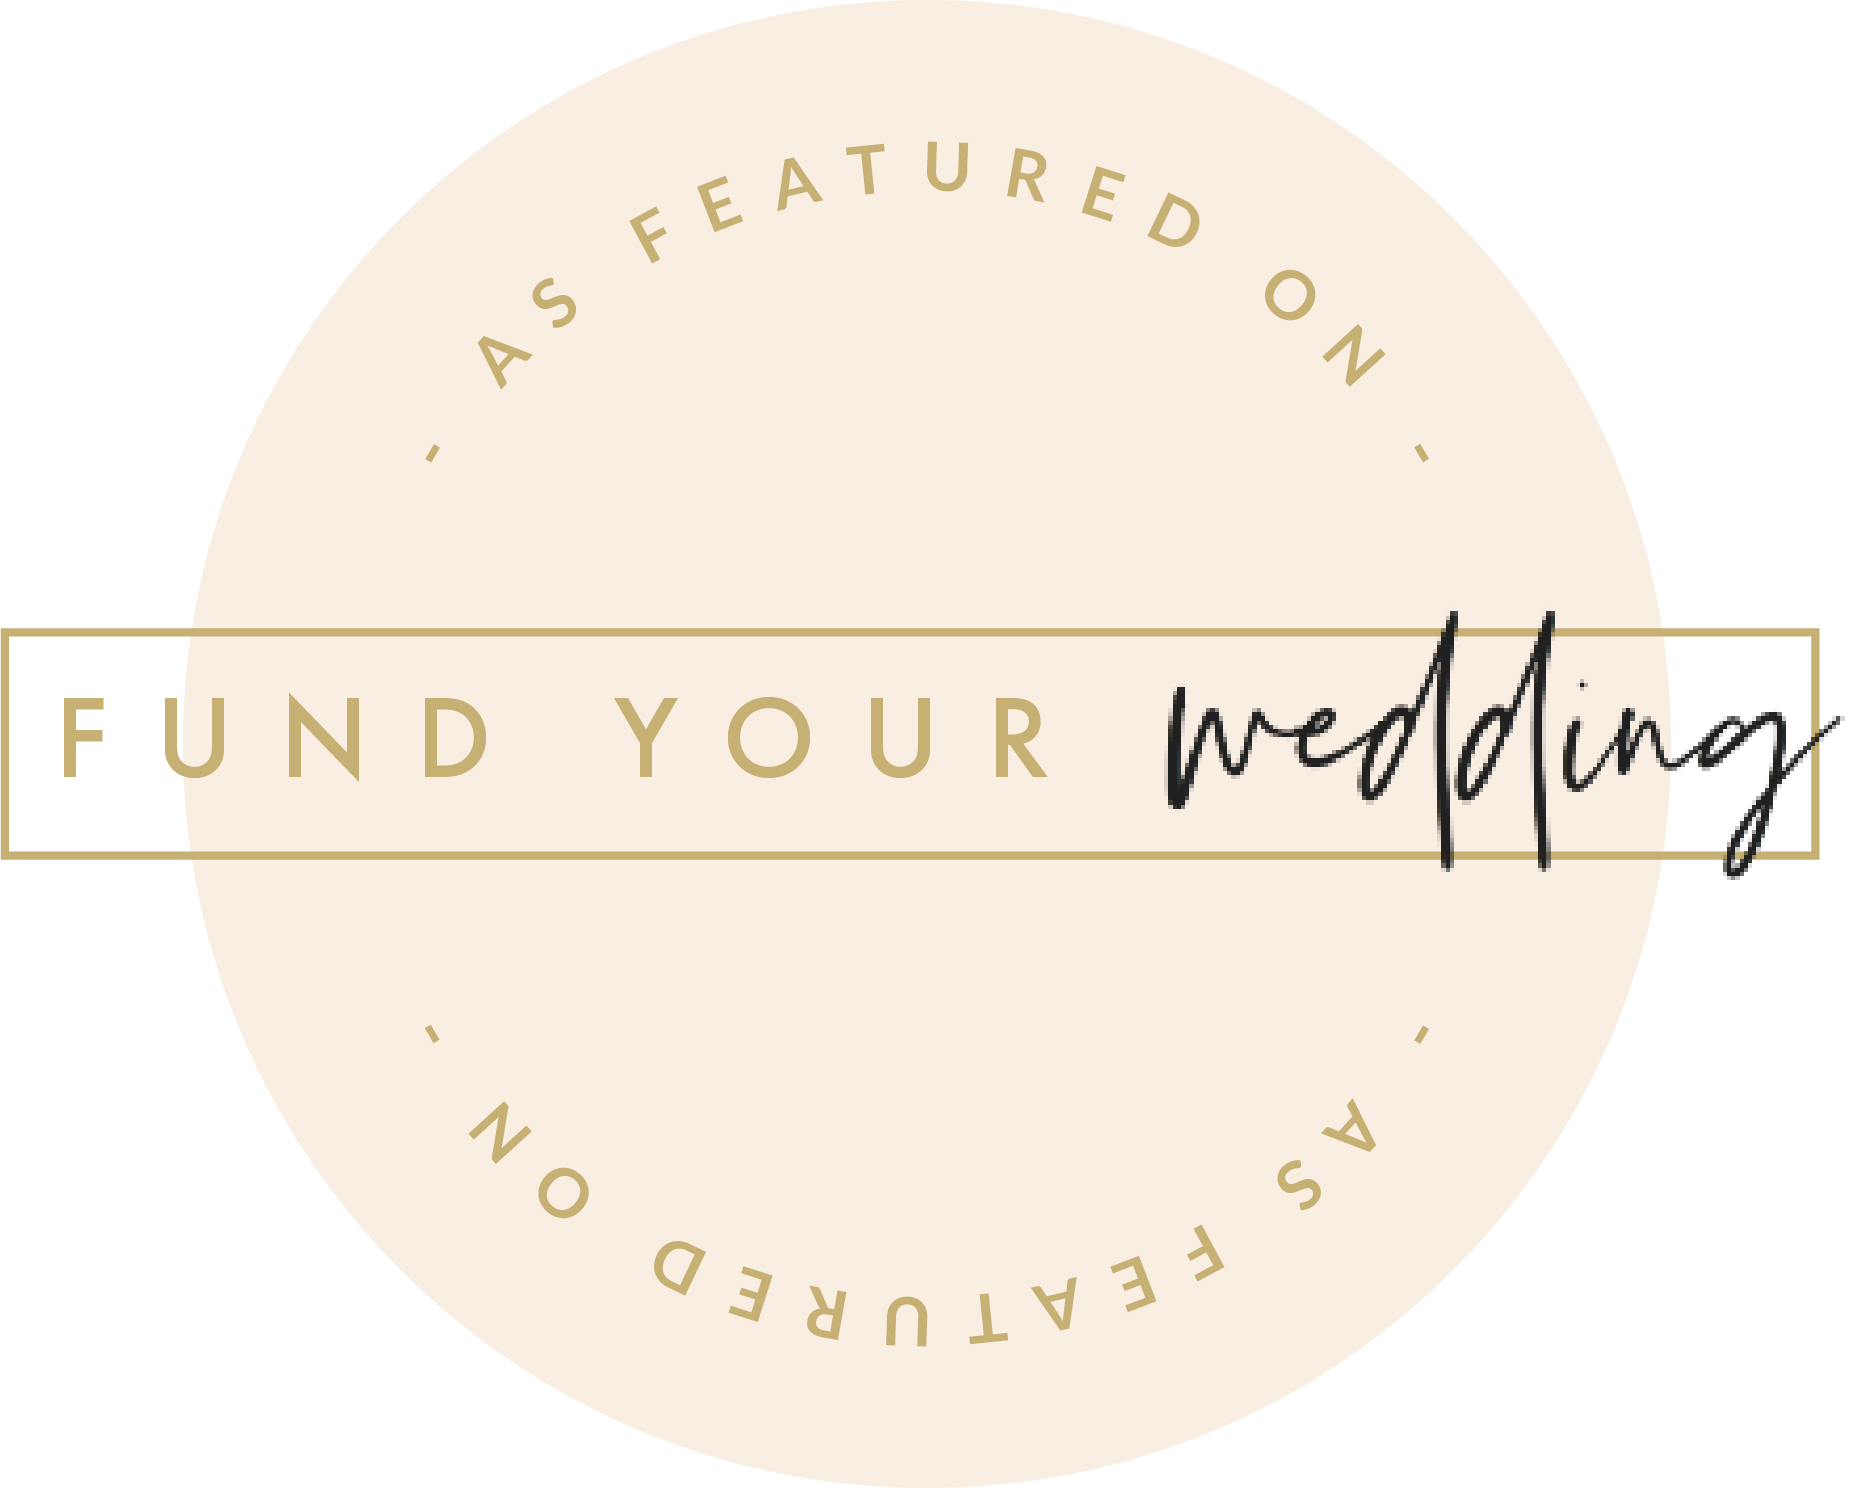 Featured On: Fund Your Wedding